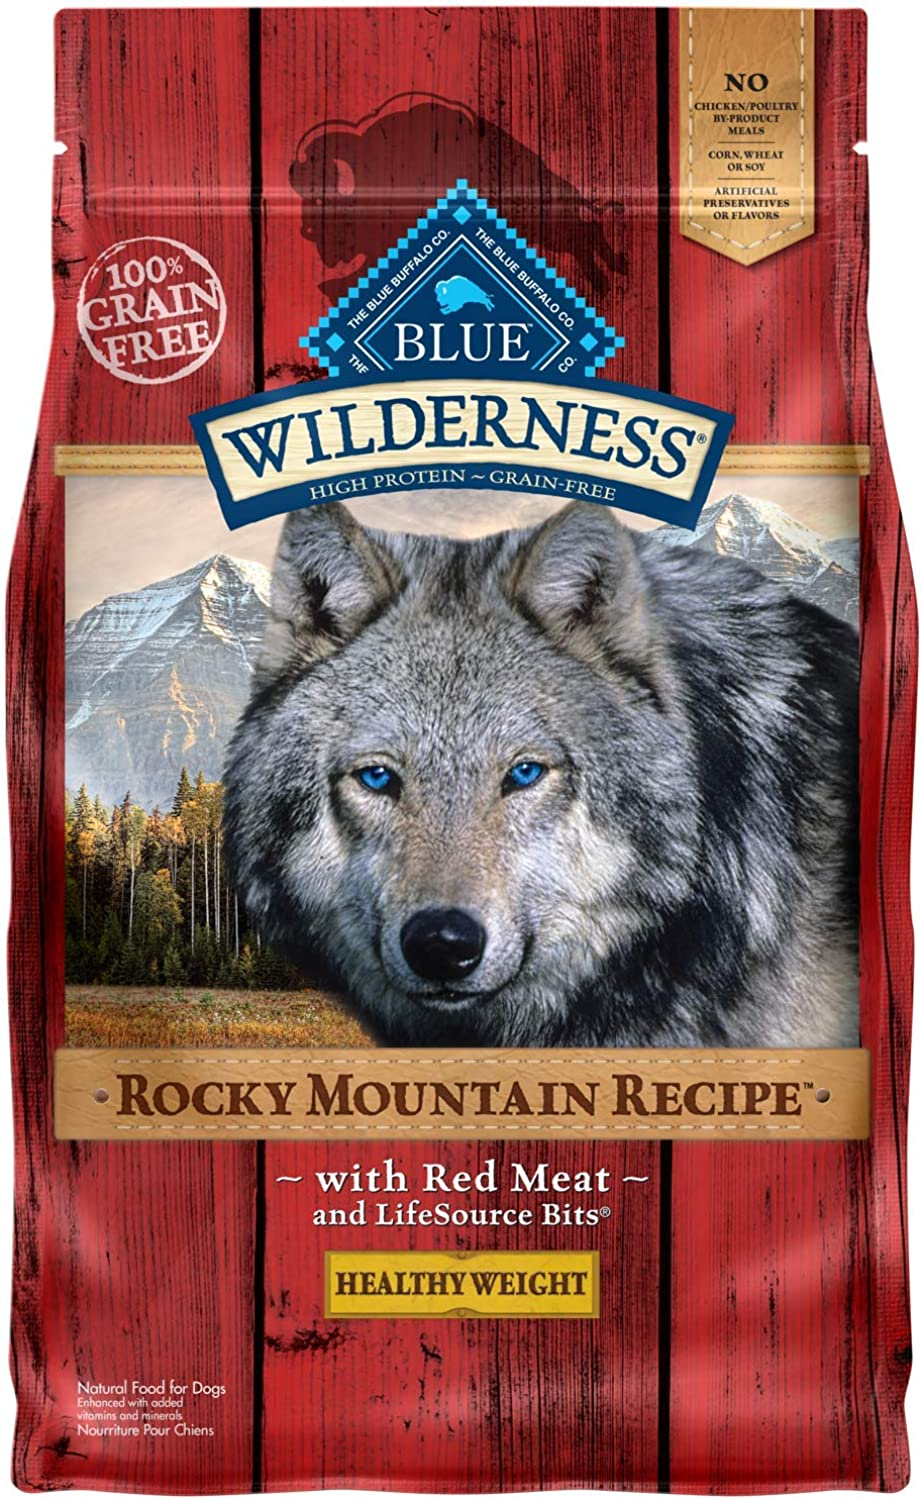 blueE Wilderness Rocky Mountain Recipe Recipe Adult Healthy Weight GrainFree Red Meat Dry Dog Food 4lb